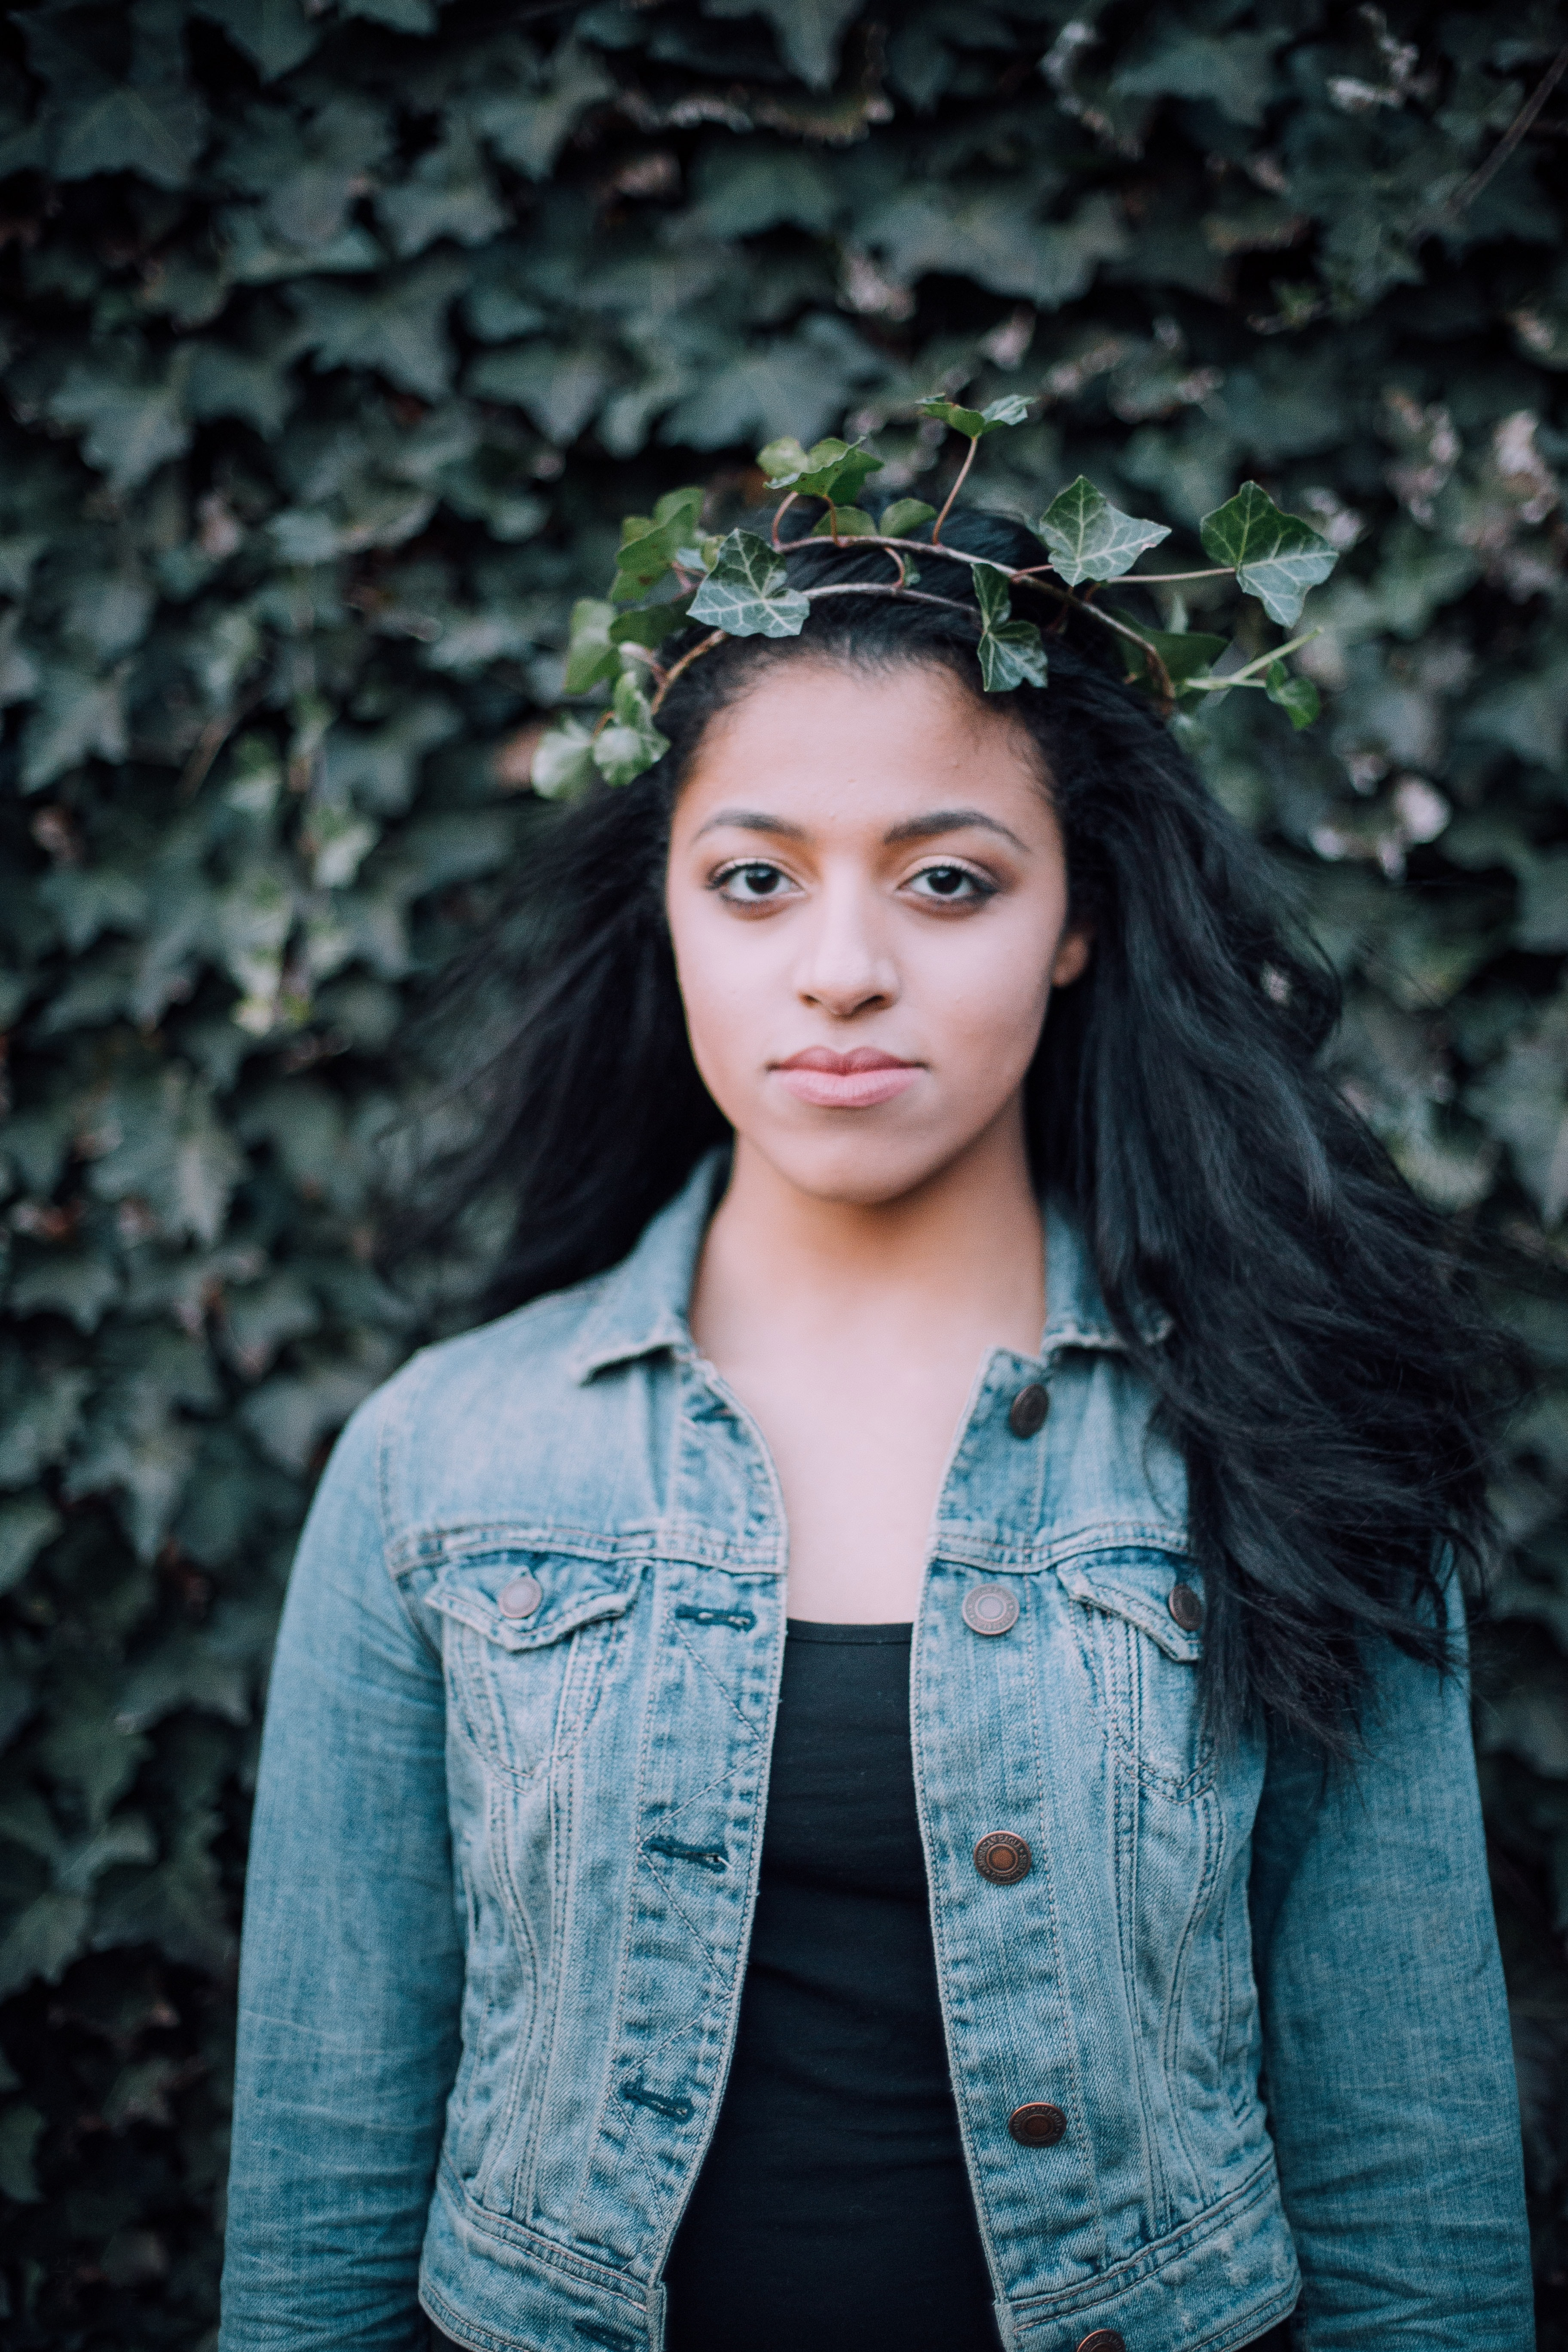 Woman wearing a crown of leaves and a denim jacket